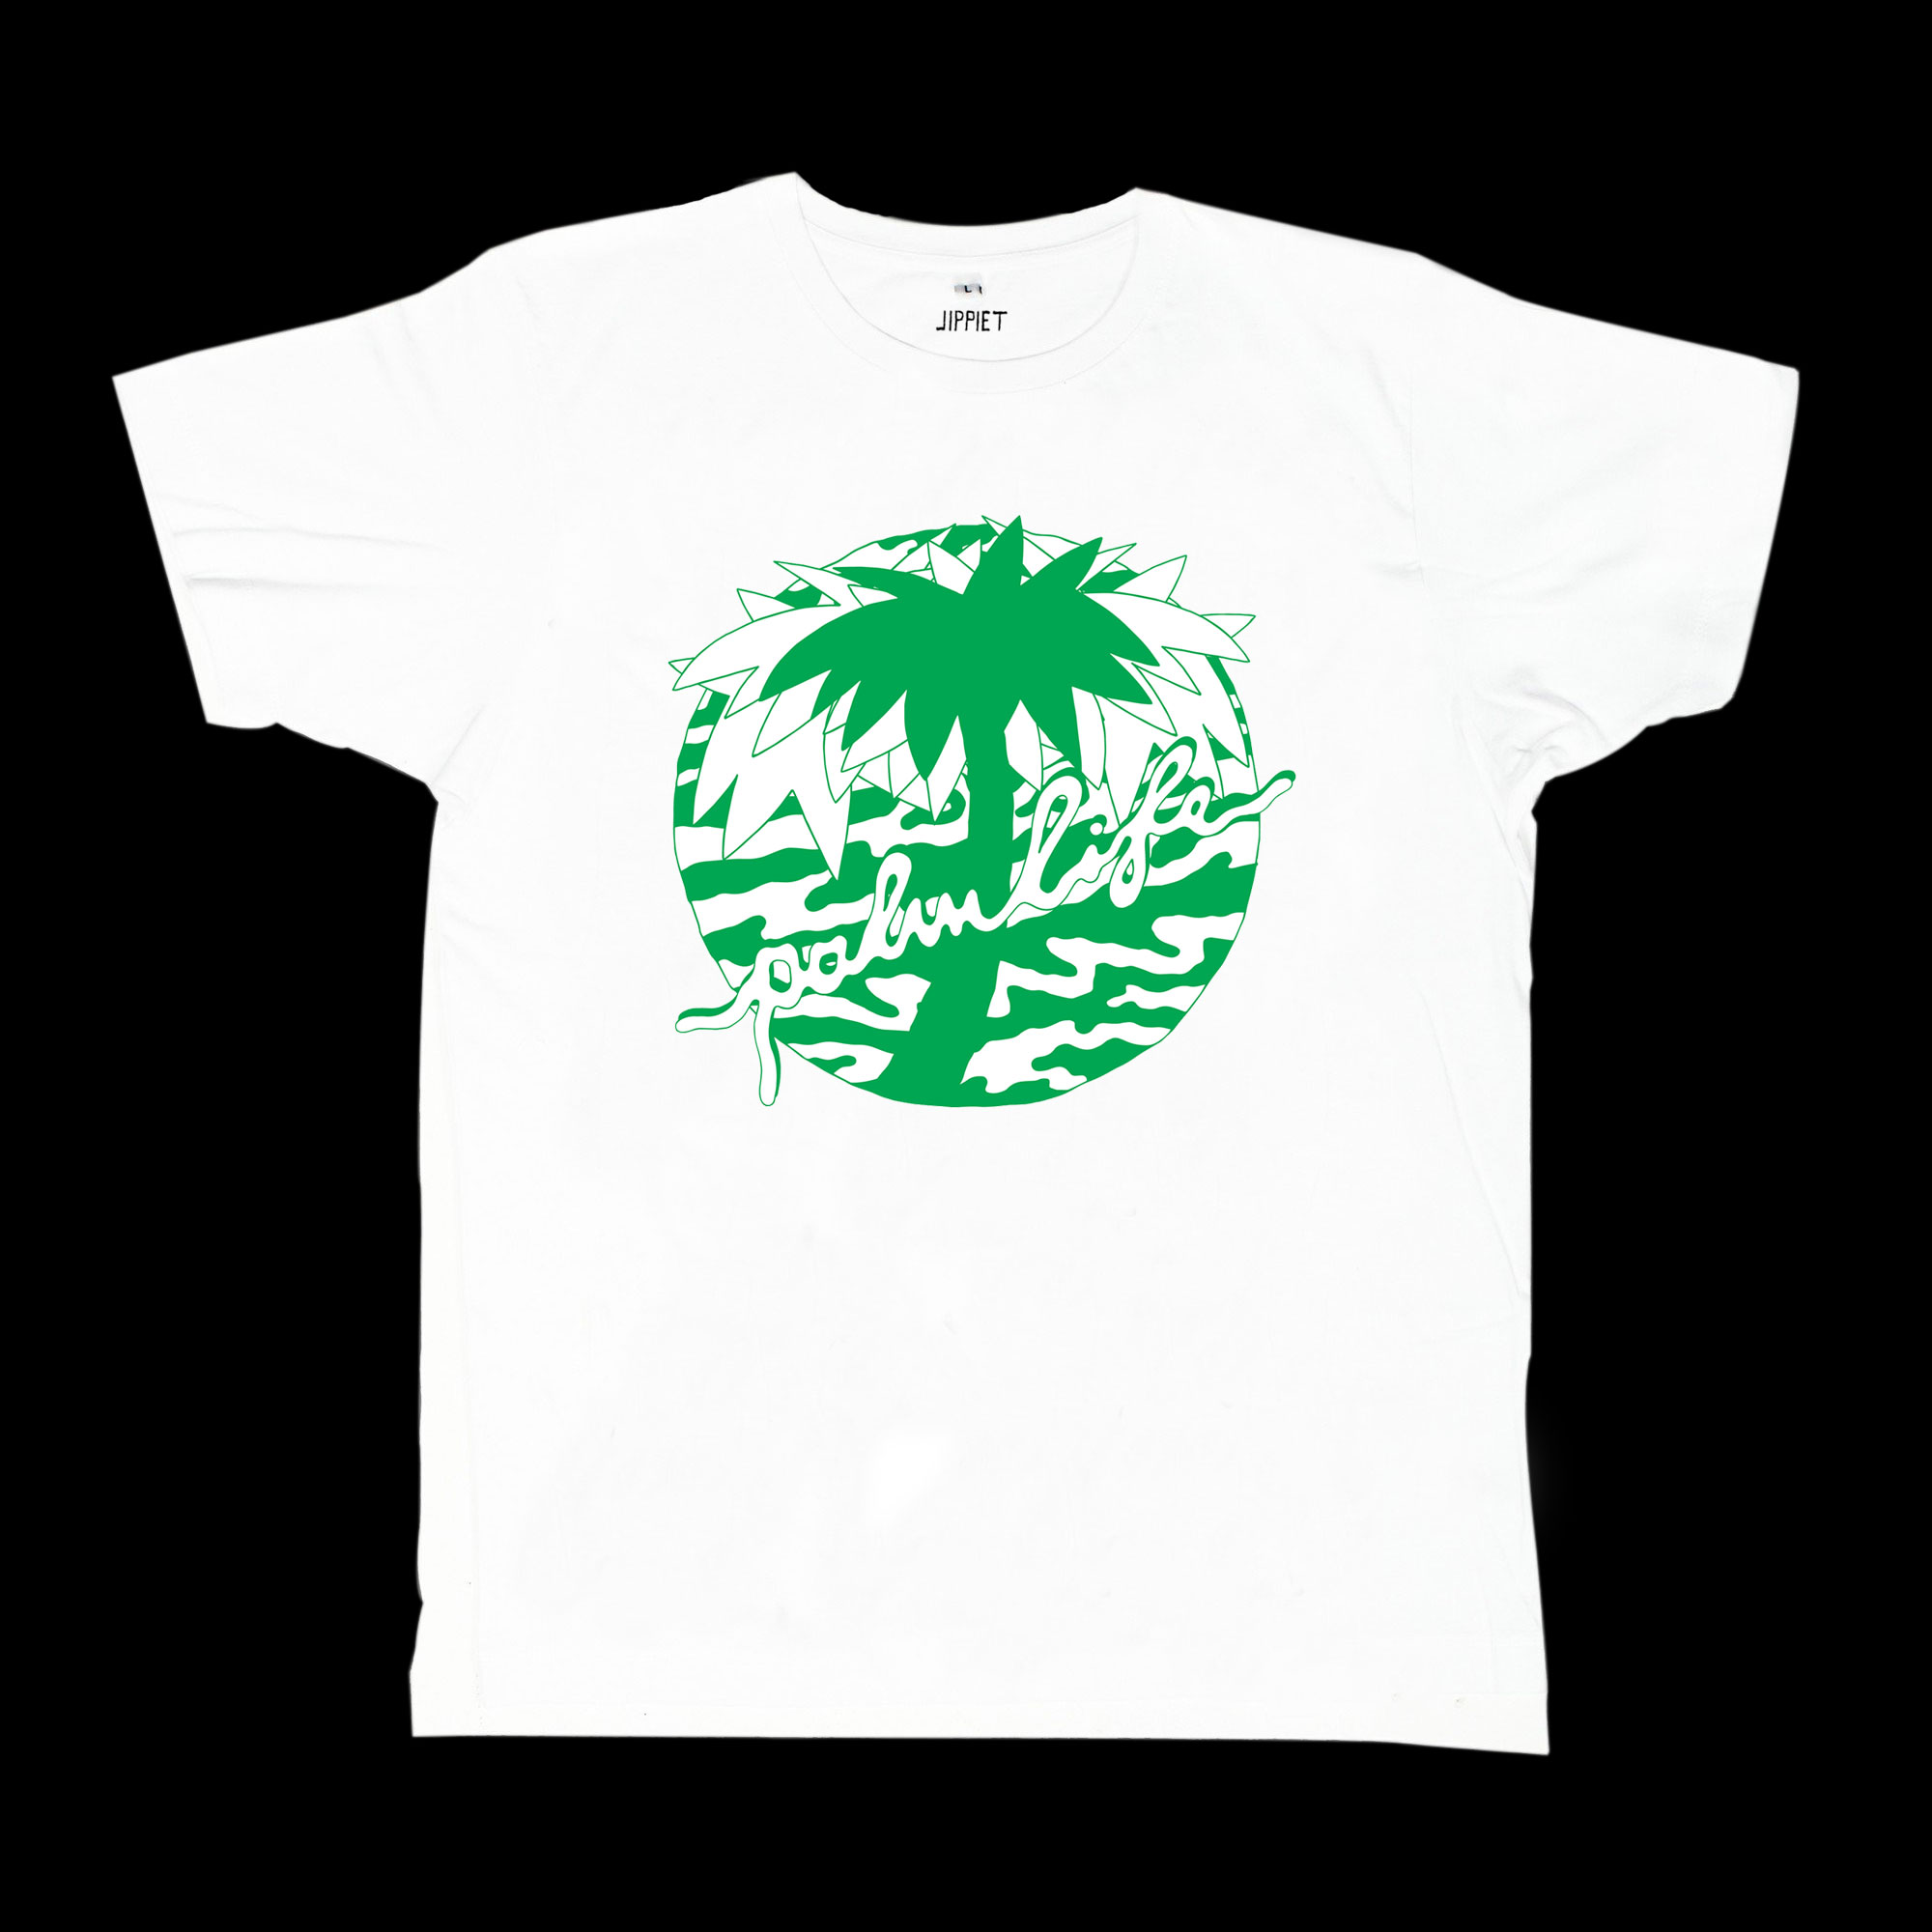 Palmlife (2016), Logo design, Silkscreen print on shirt.